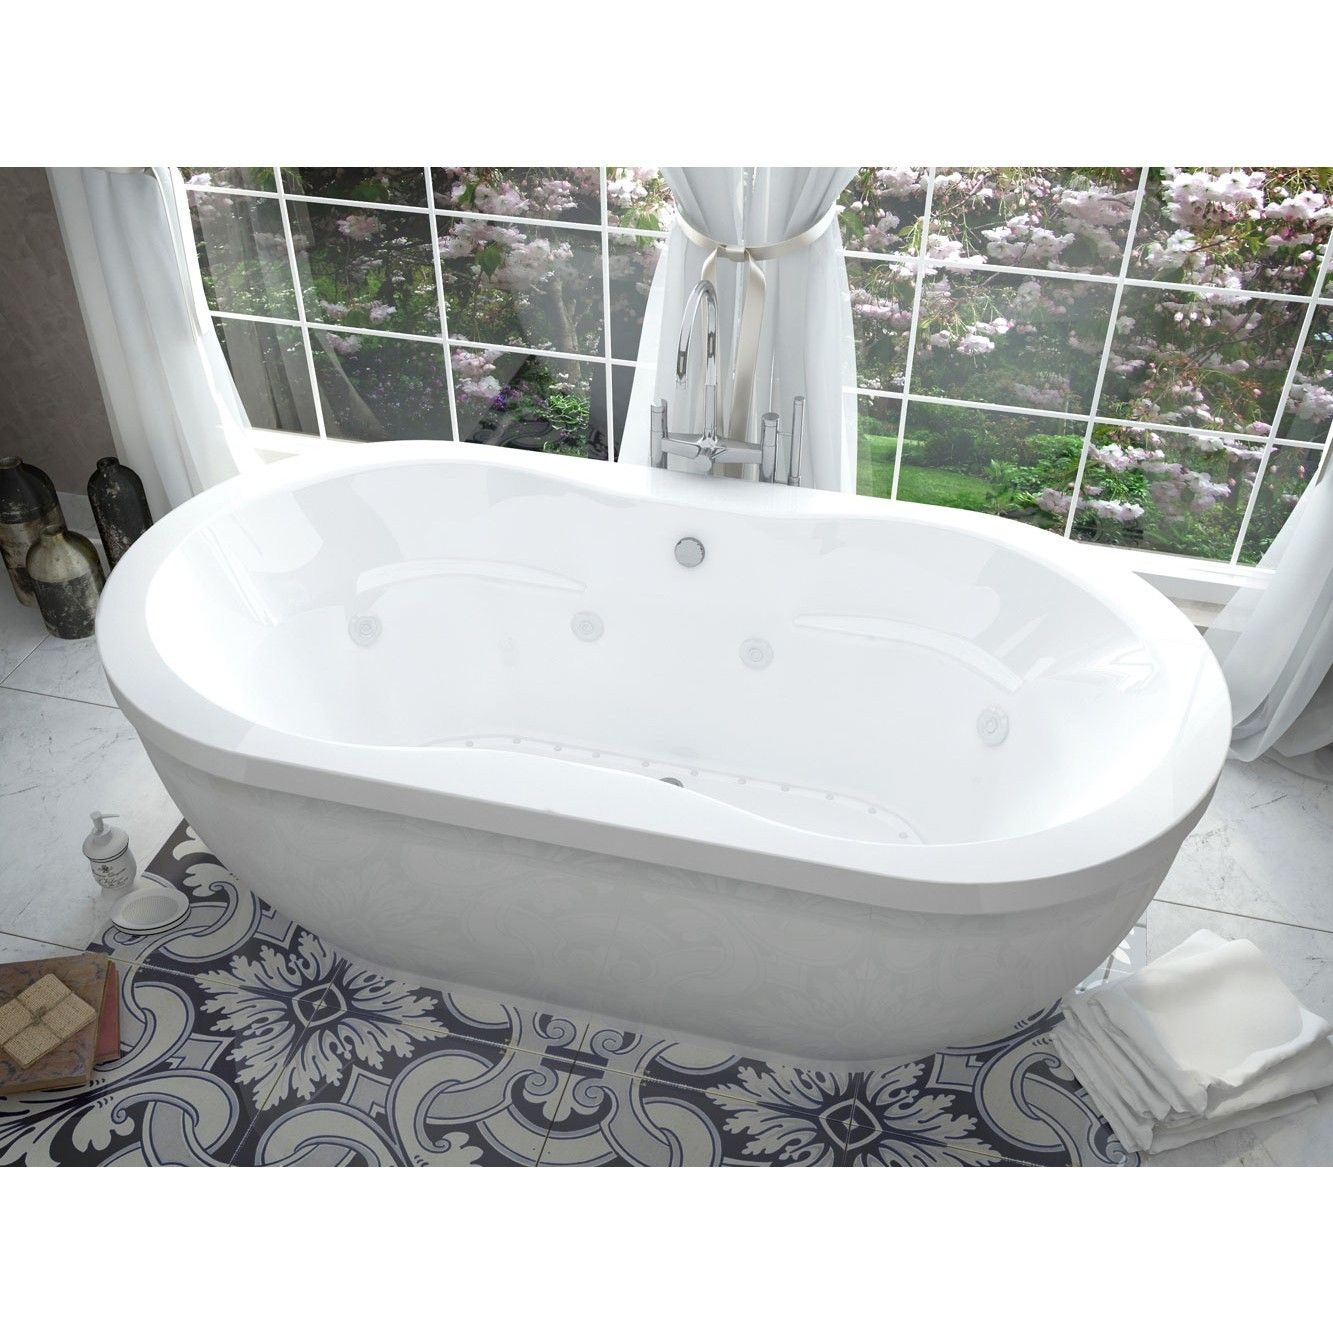 freestanding tub with jets.  freestanding jacuzzi bathtub Steam shower